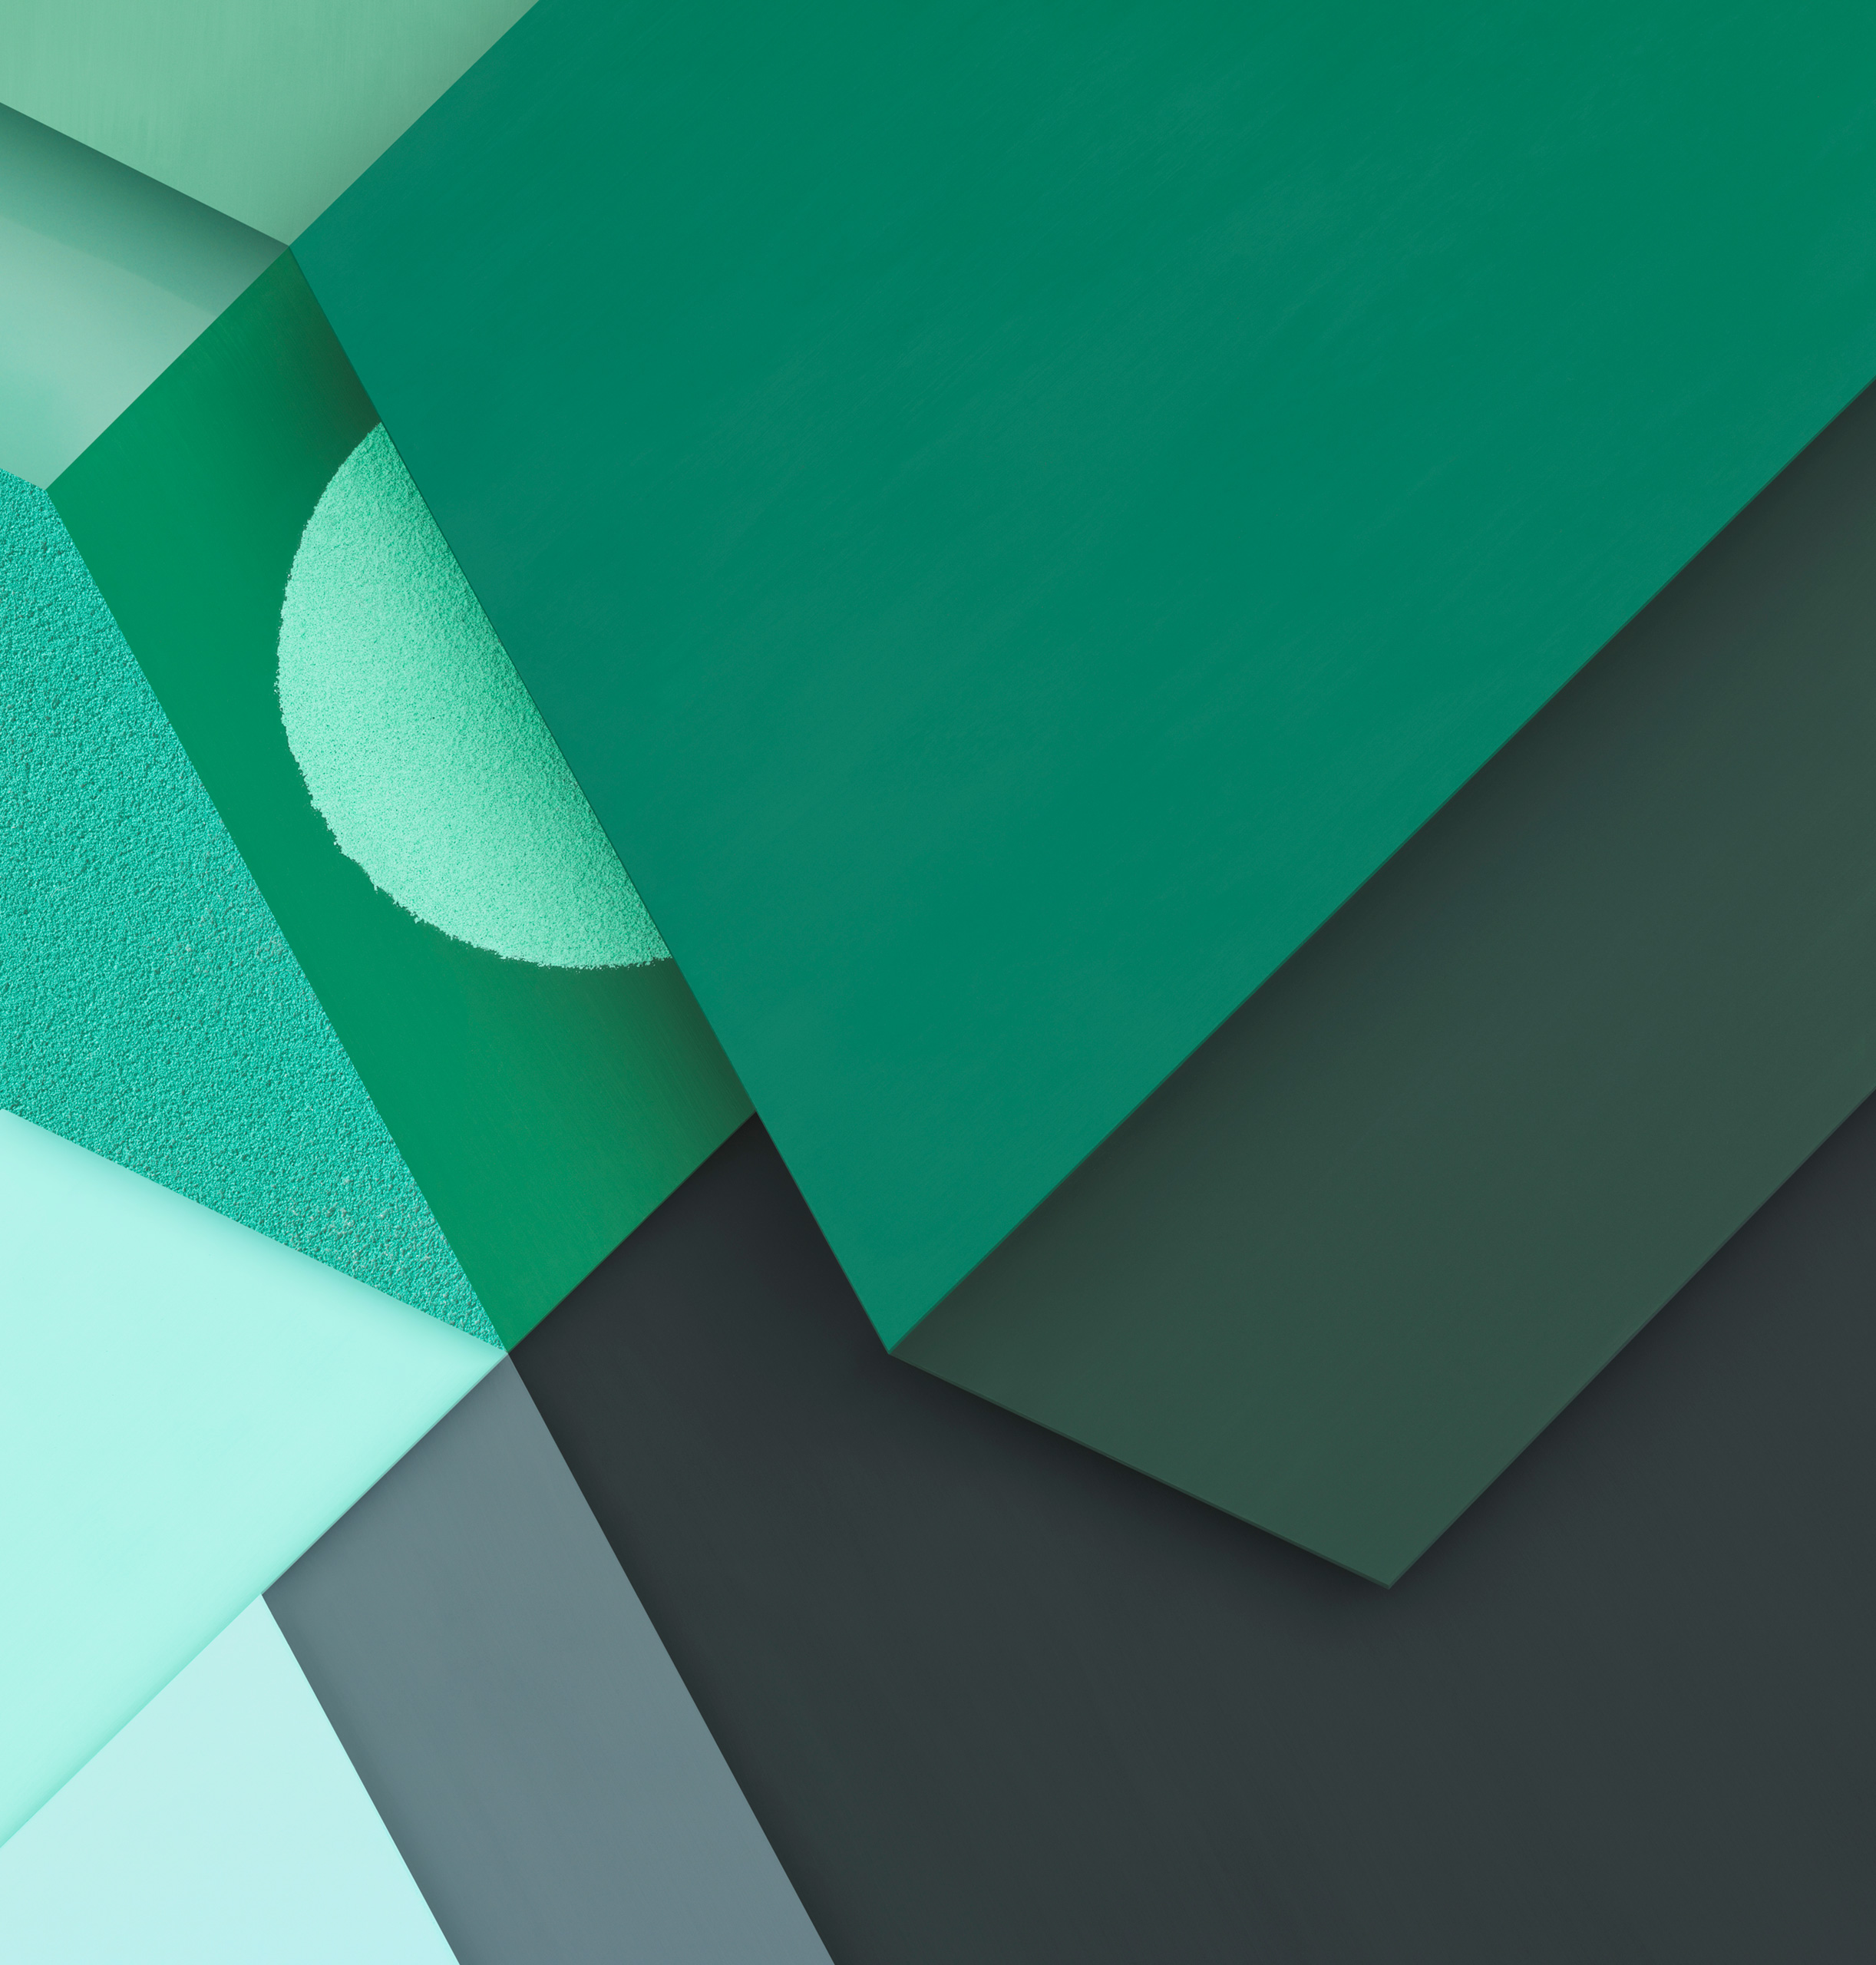 android 6 marshmallow wallpapers